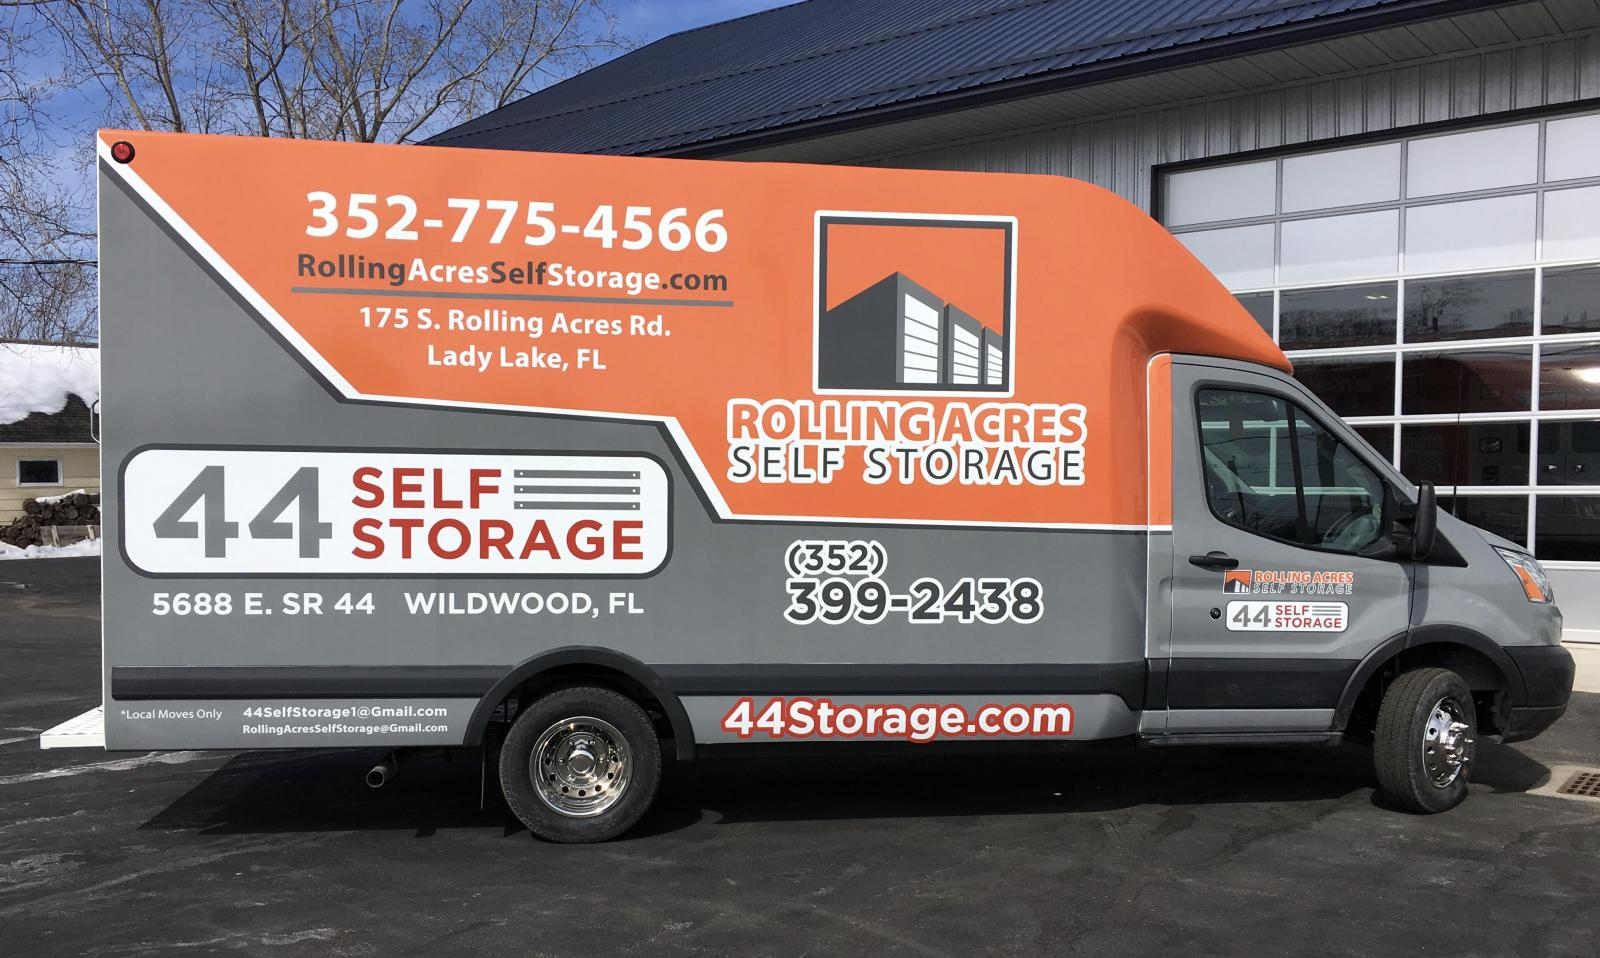 Rent this truck for FREE* with move in!